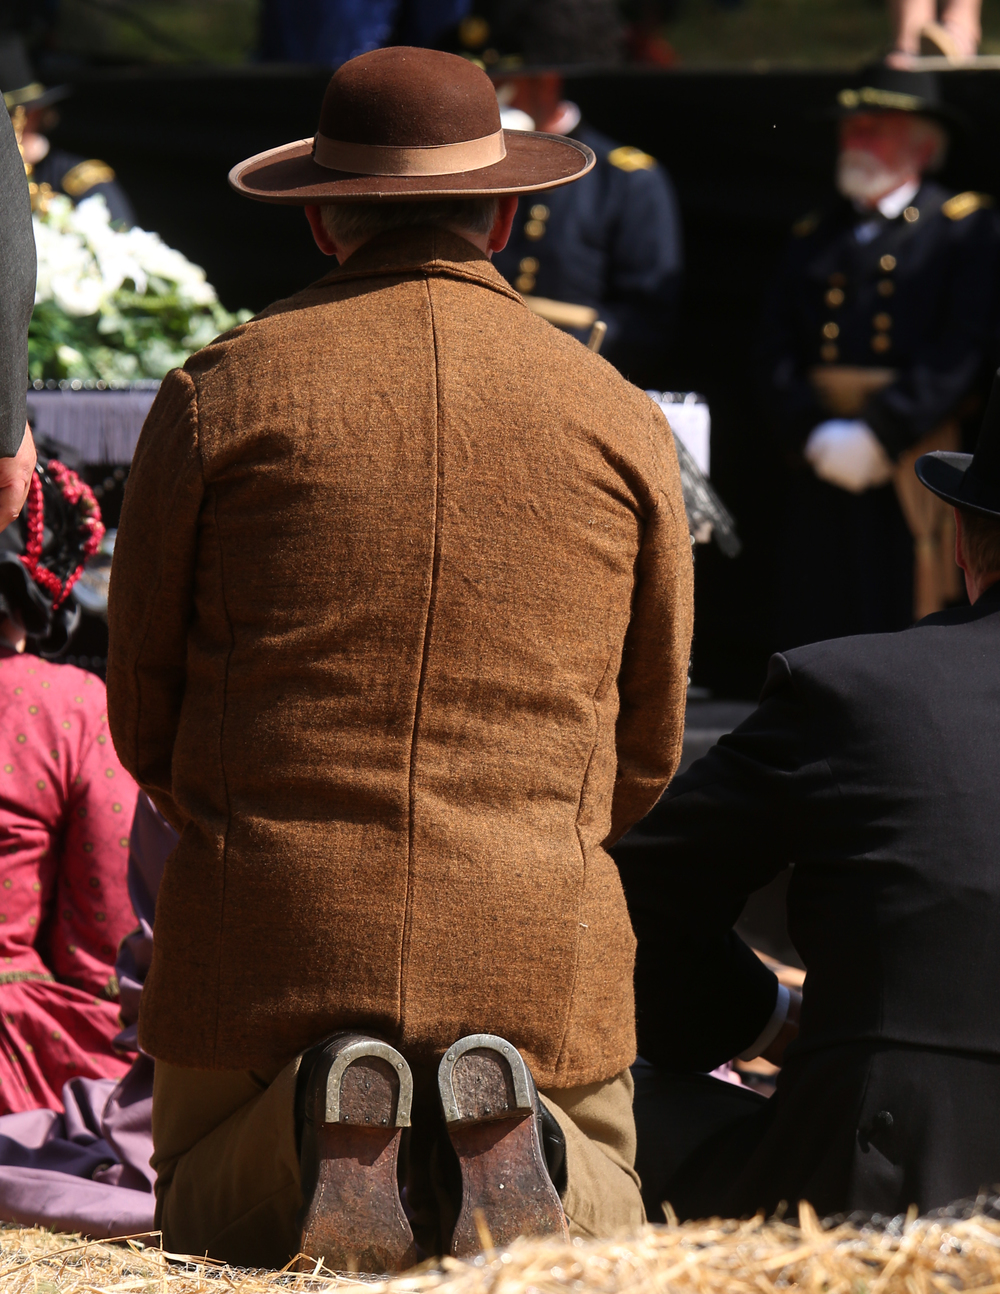 A re-enactor kneels in front of the coffin during the funeral service at the receiving vault Sunday at Oak Ridge Cemetery. David Spencer/The State Journal-Register